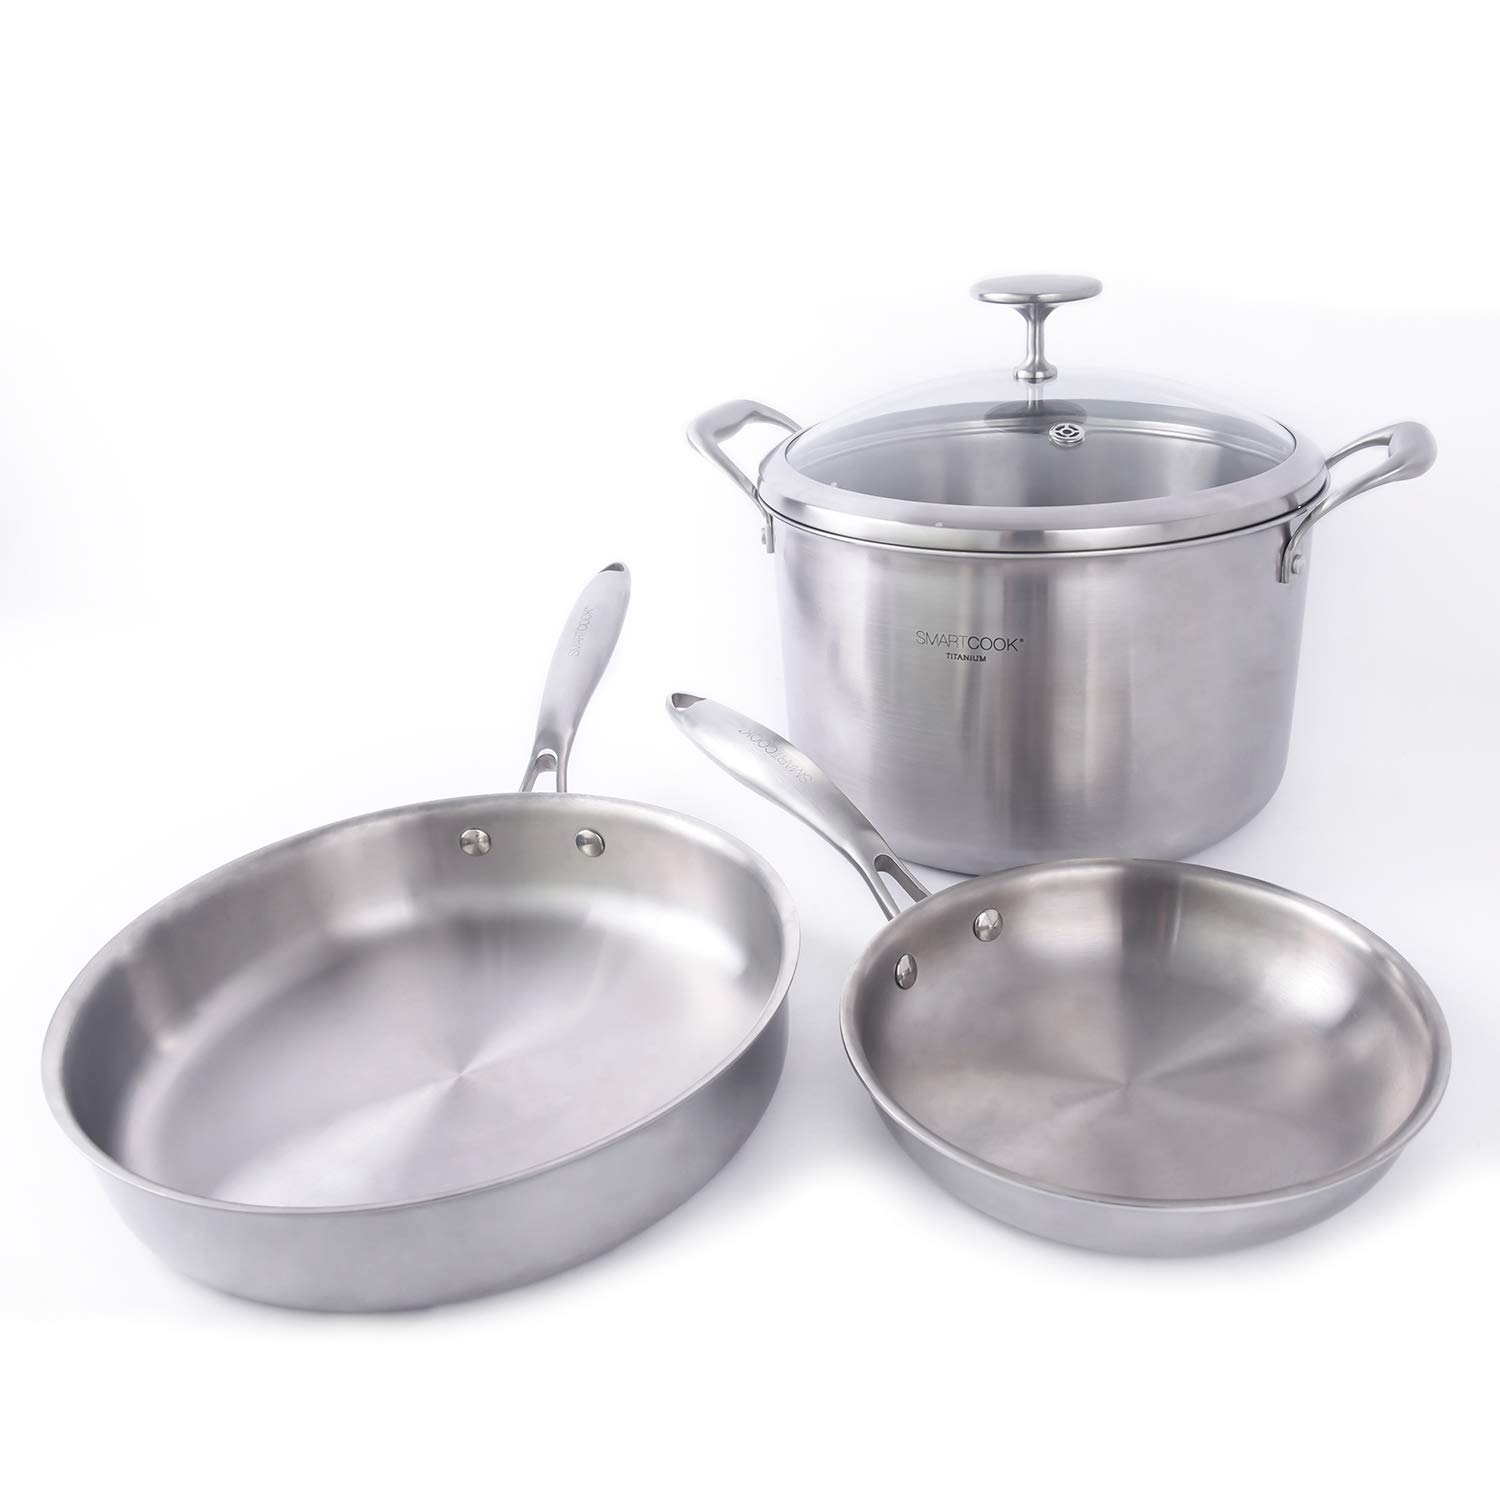 8 and 10 Dishwasher Safe Smart Cook Titanium Cookware Set 4-Piece with Nonstick No Coating 82008 Silver 8 and 10 DONG GUAN HUI HENG FENG MANUFACTURER LIMITD